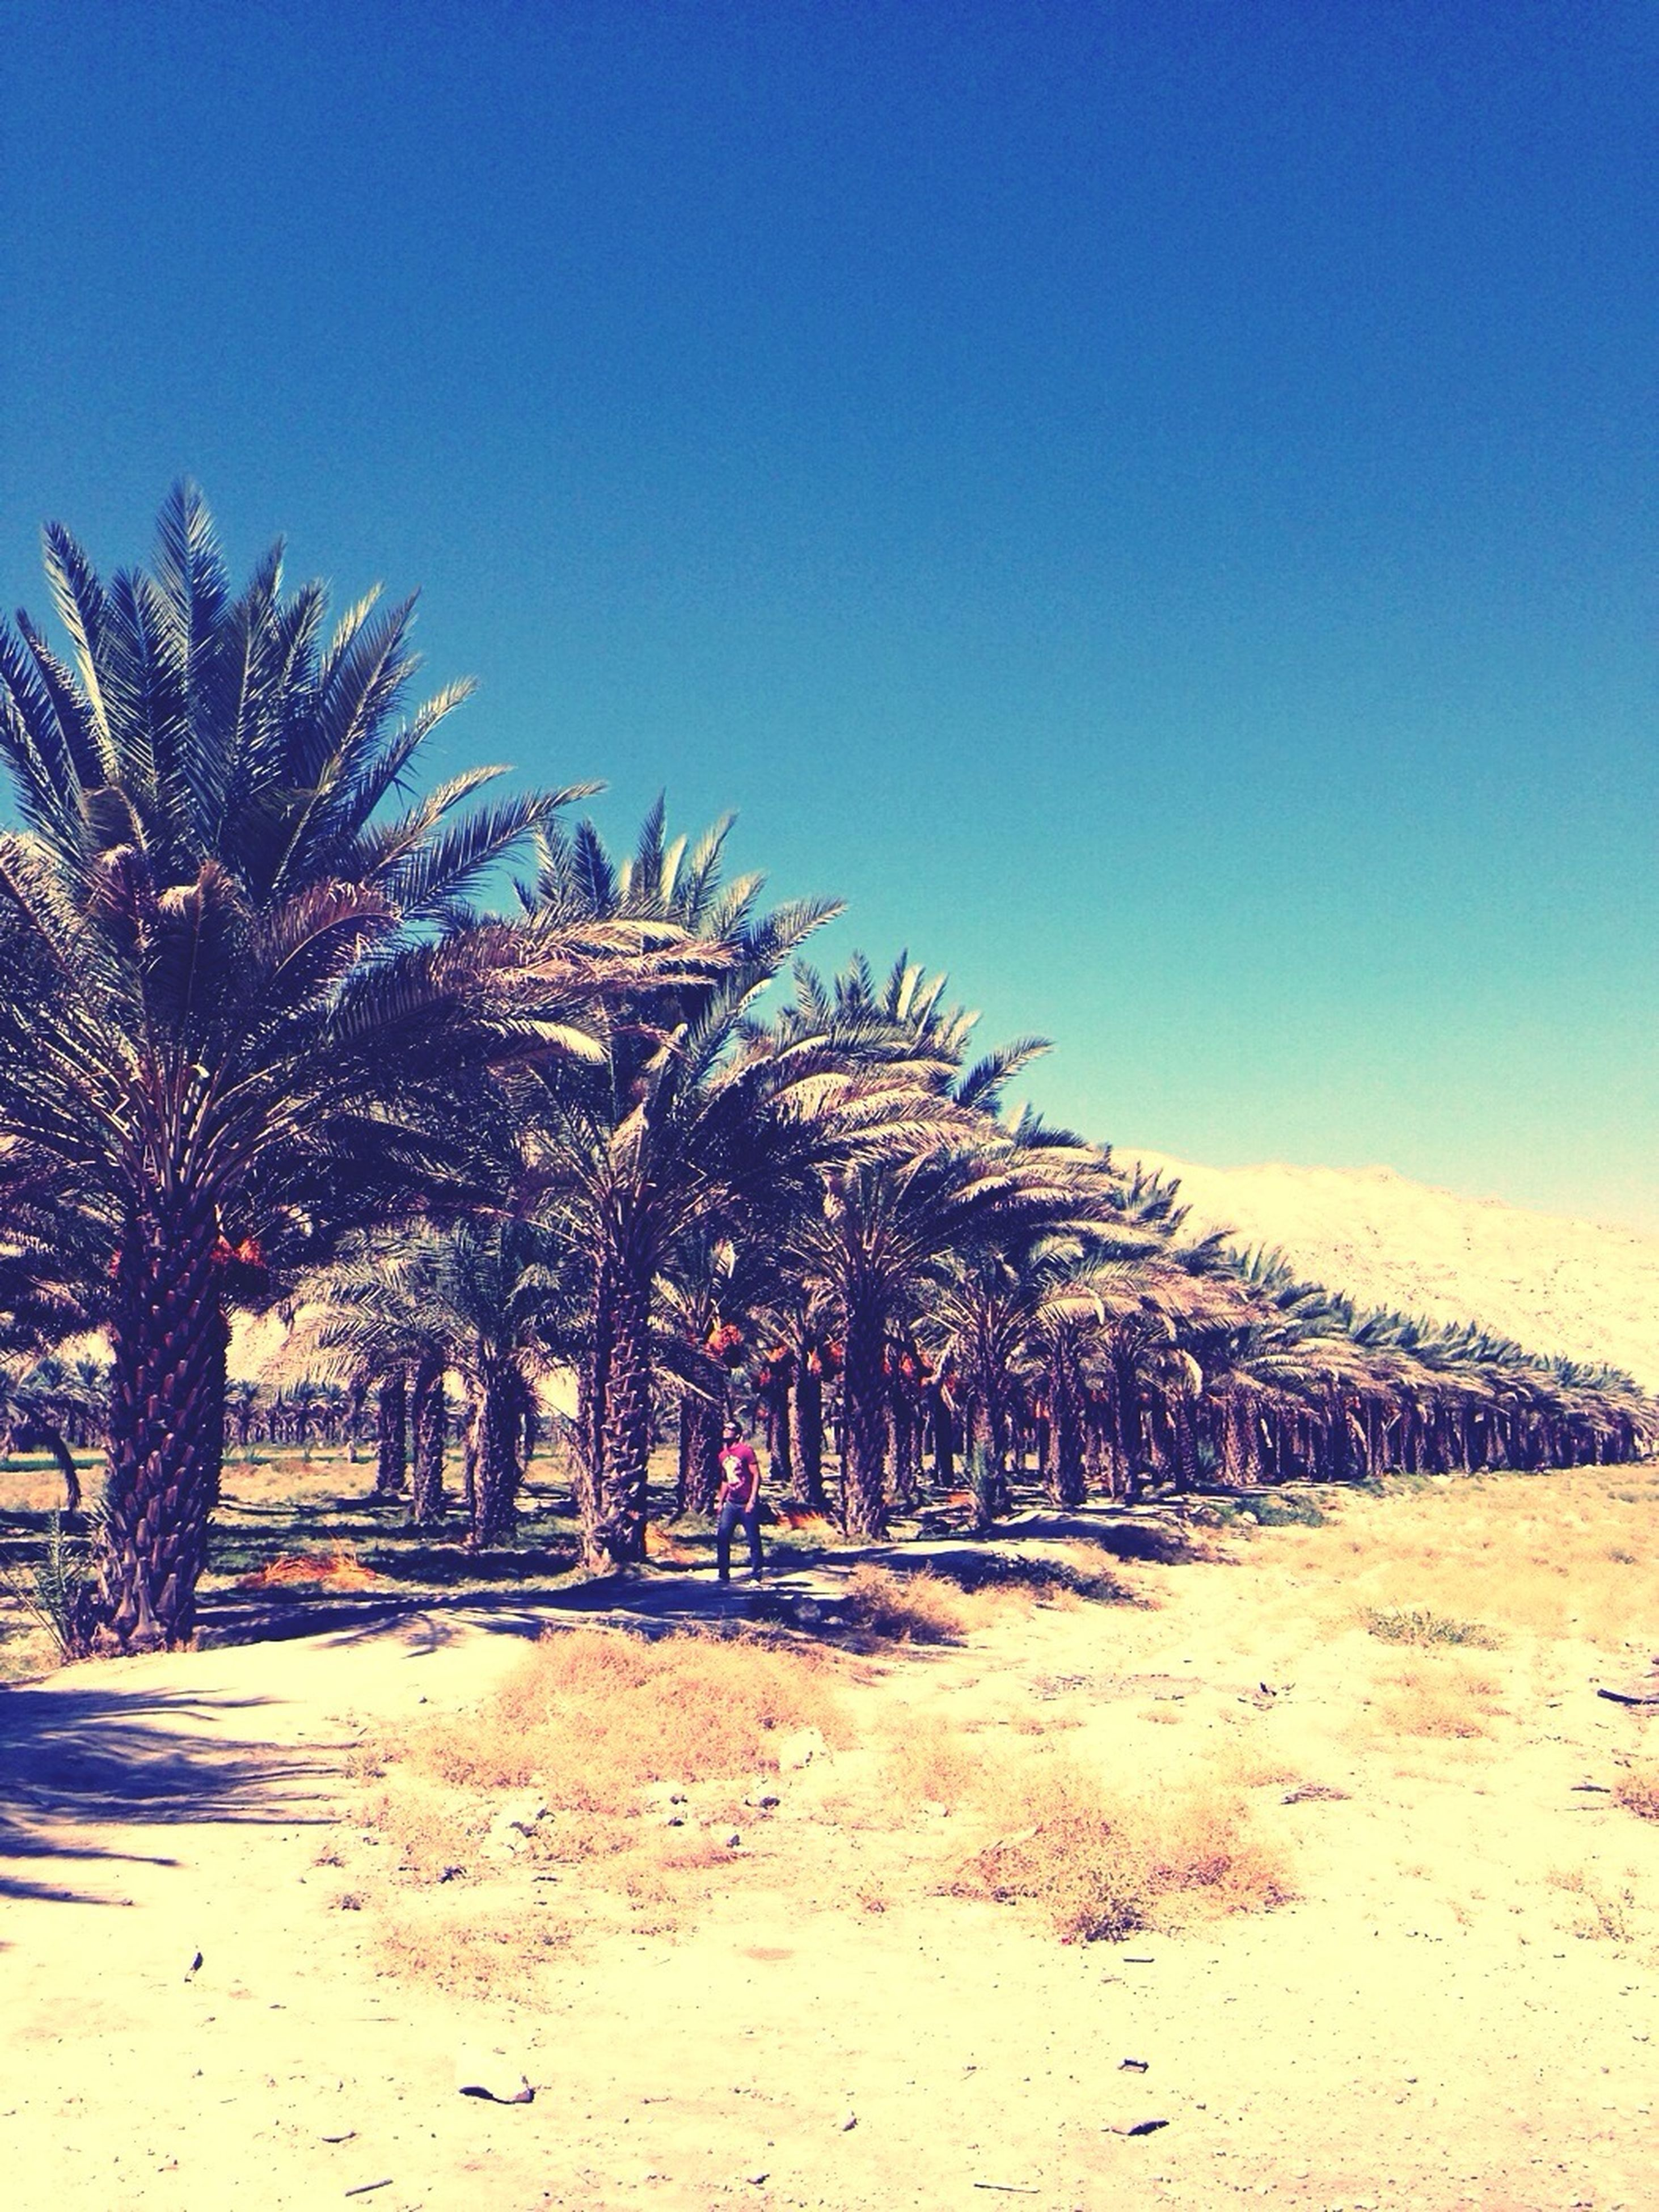 beach, clear sky, sand, palm tree, tree, tranquility, tranquil scene, blue, nature, scenics, beauty in nature, sea, shore, growth, copy space, sky, sunlight, landscape, idyllic, outdoors